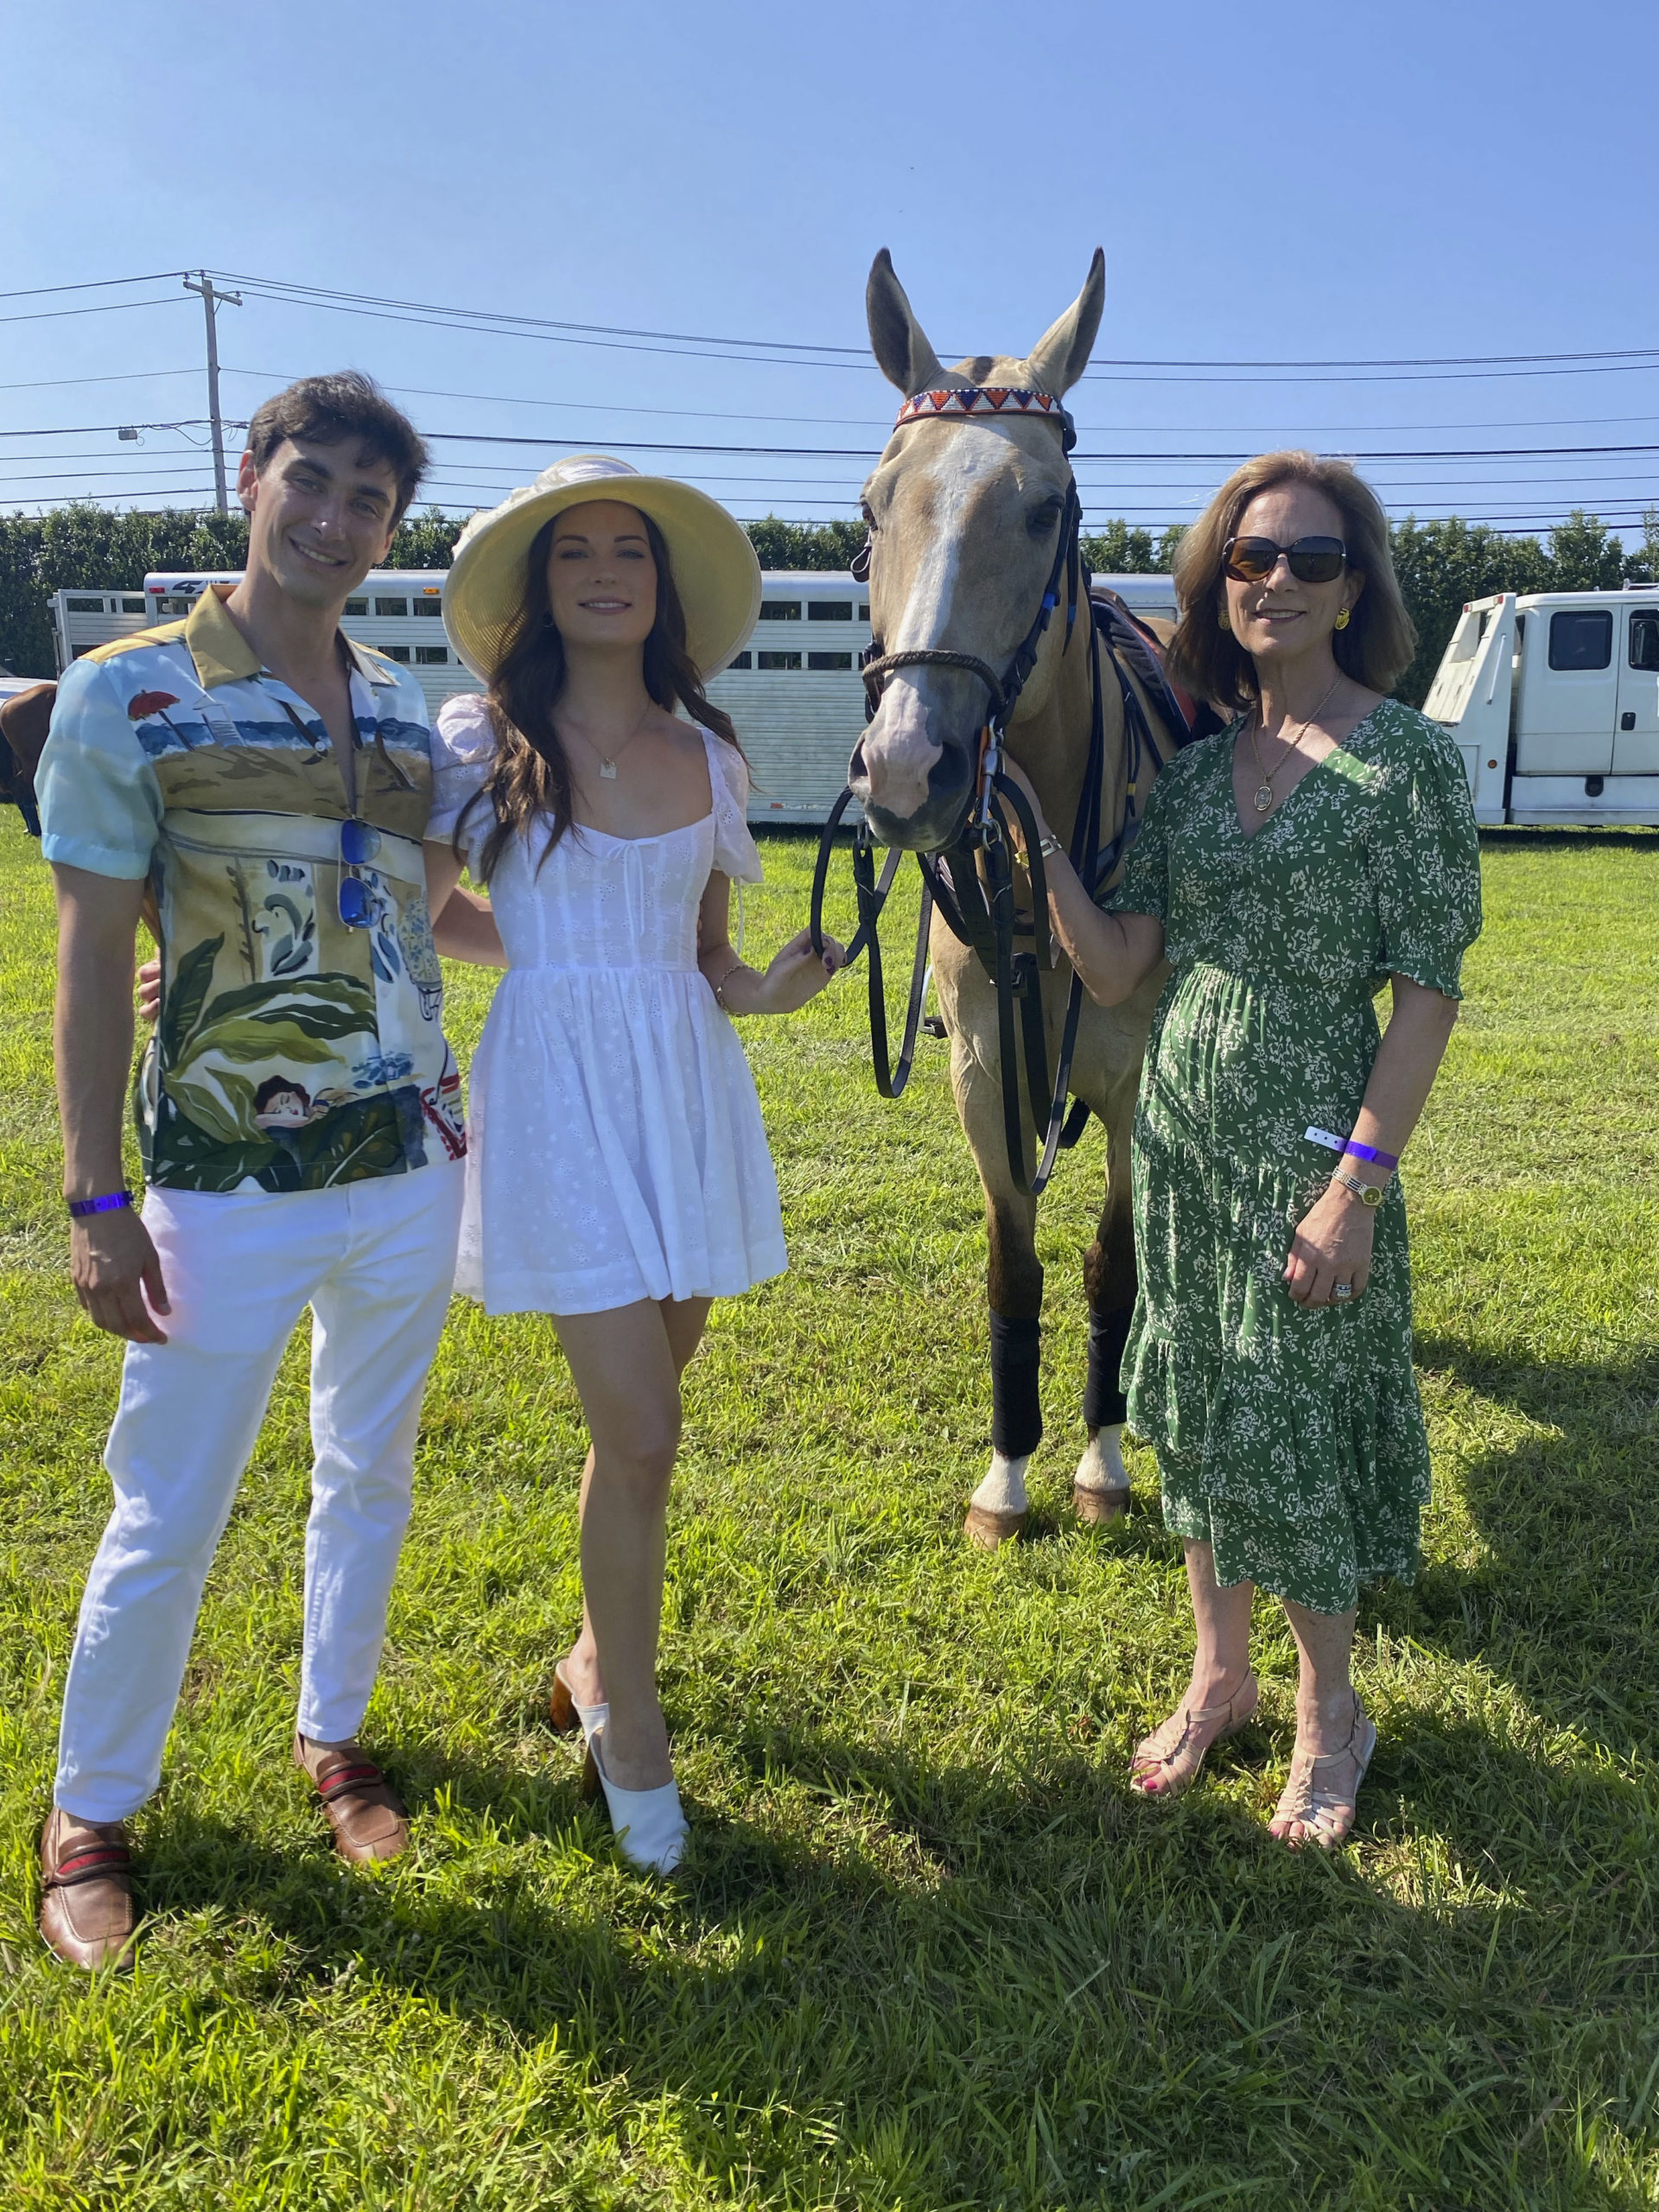 Bardley Fishel with Vivian and Paige Louthan with Caramello one of the polo ponies.   GREG DELIA